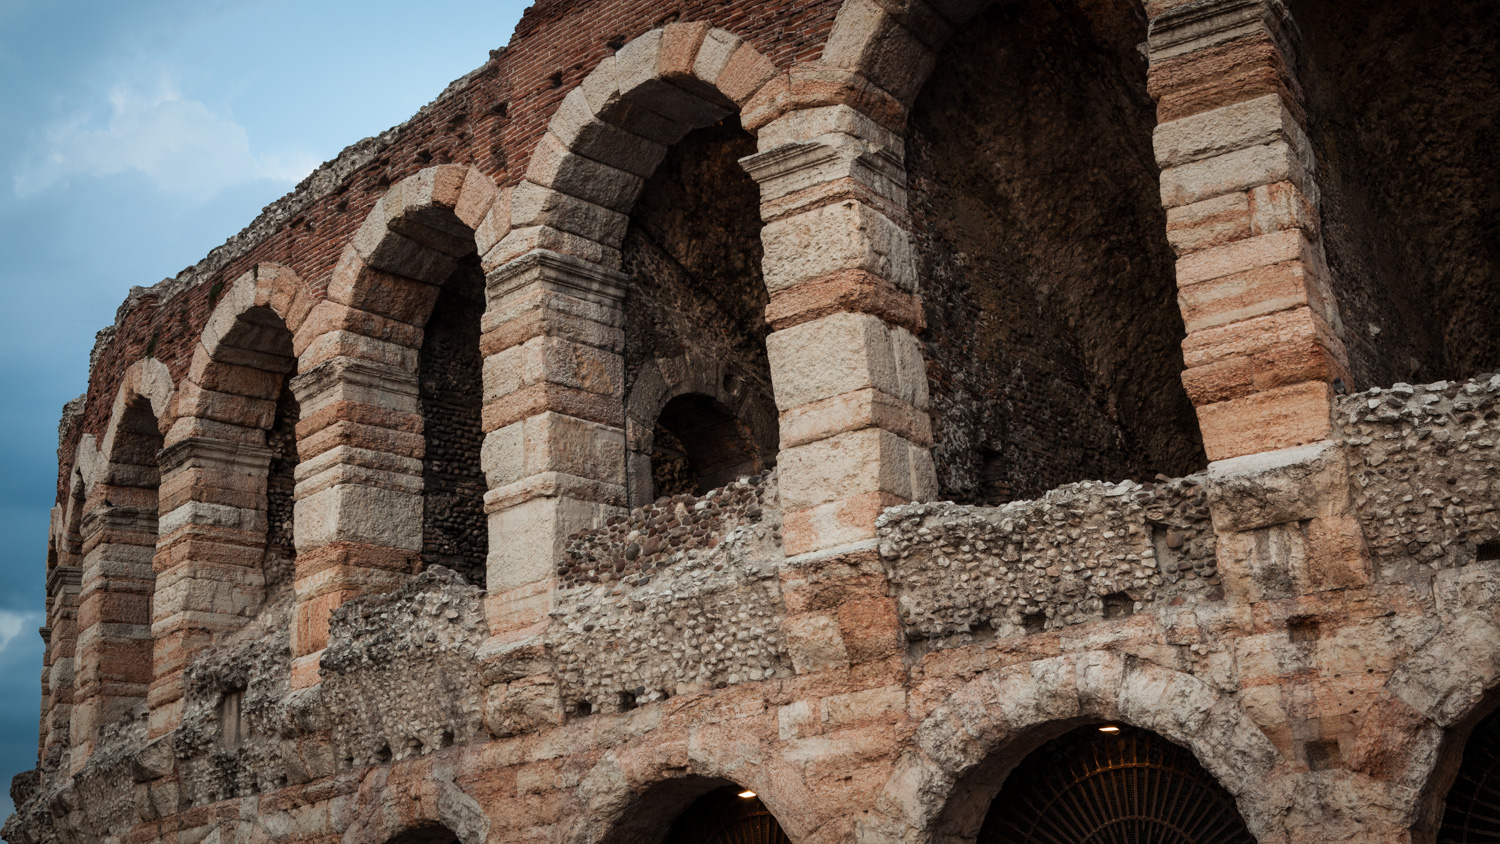 Italy : Veneto : Arena di Verona, 1st century construction at its finest